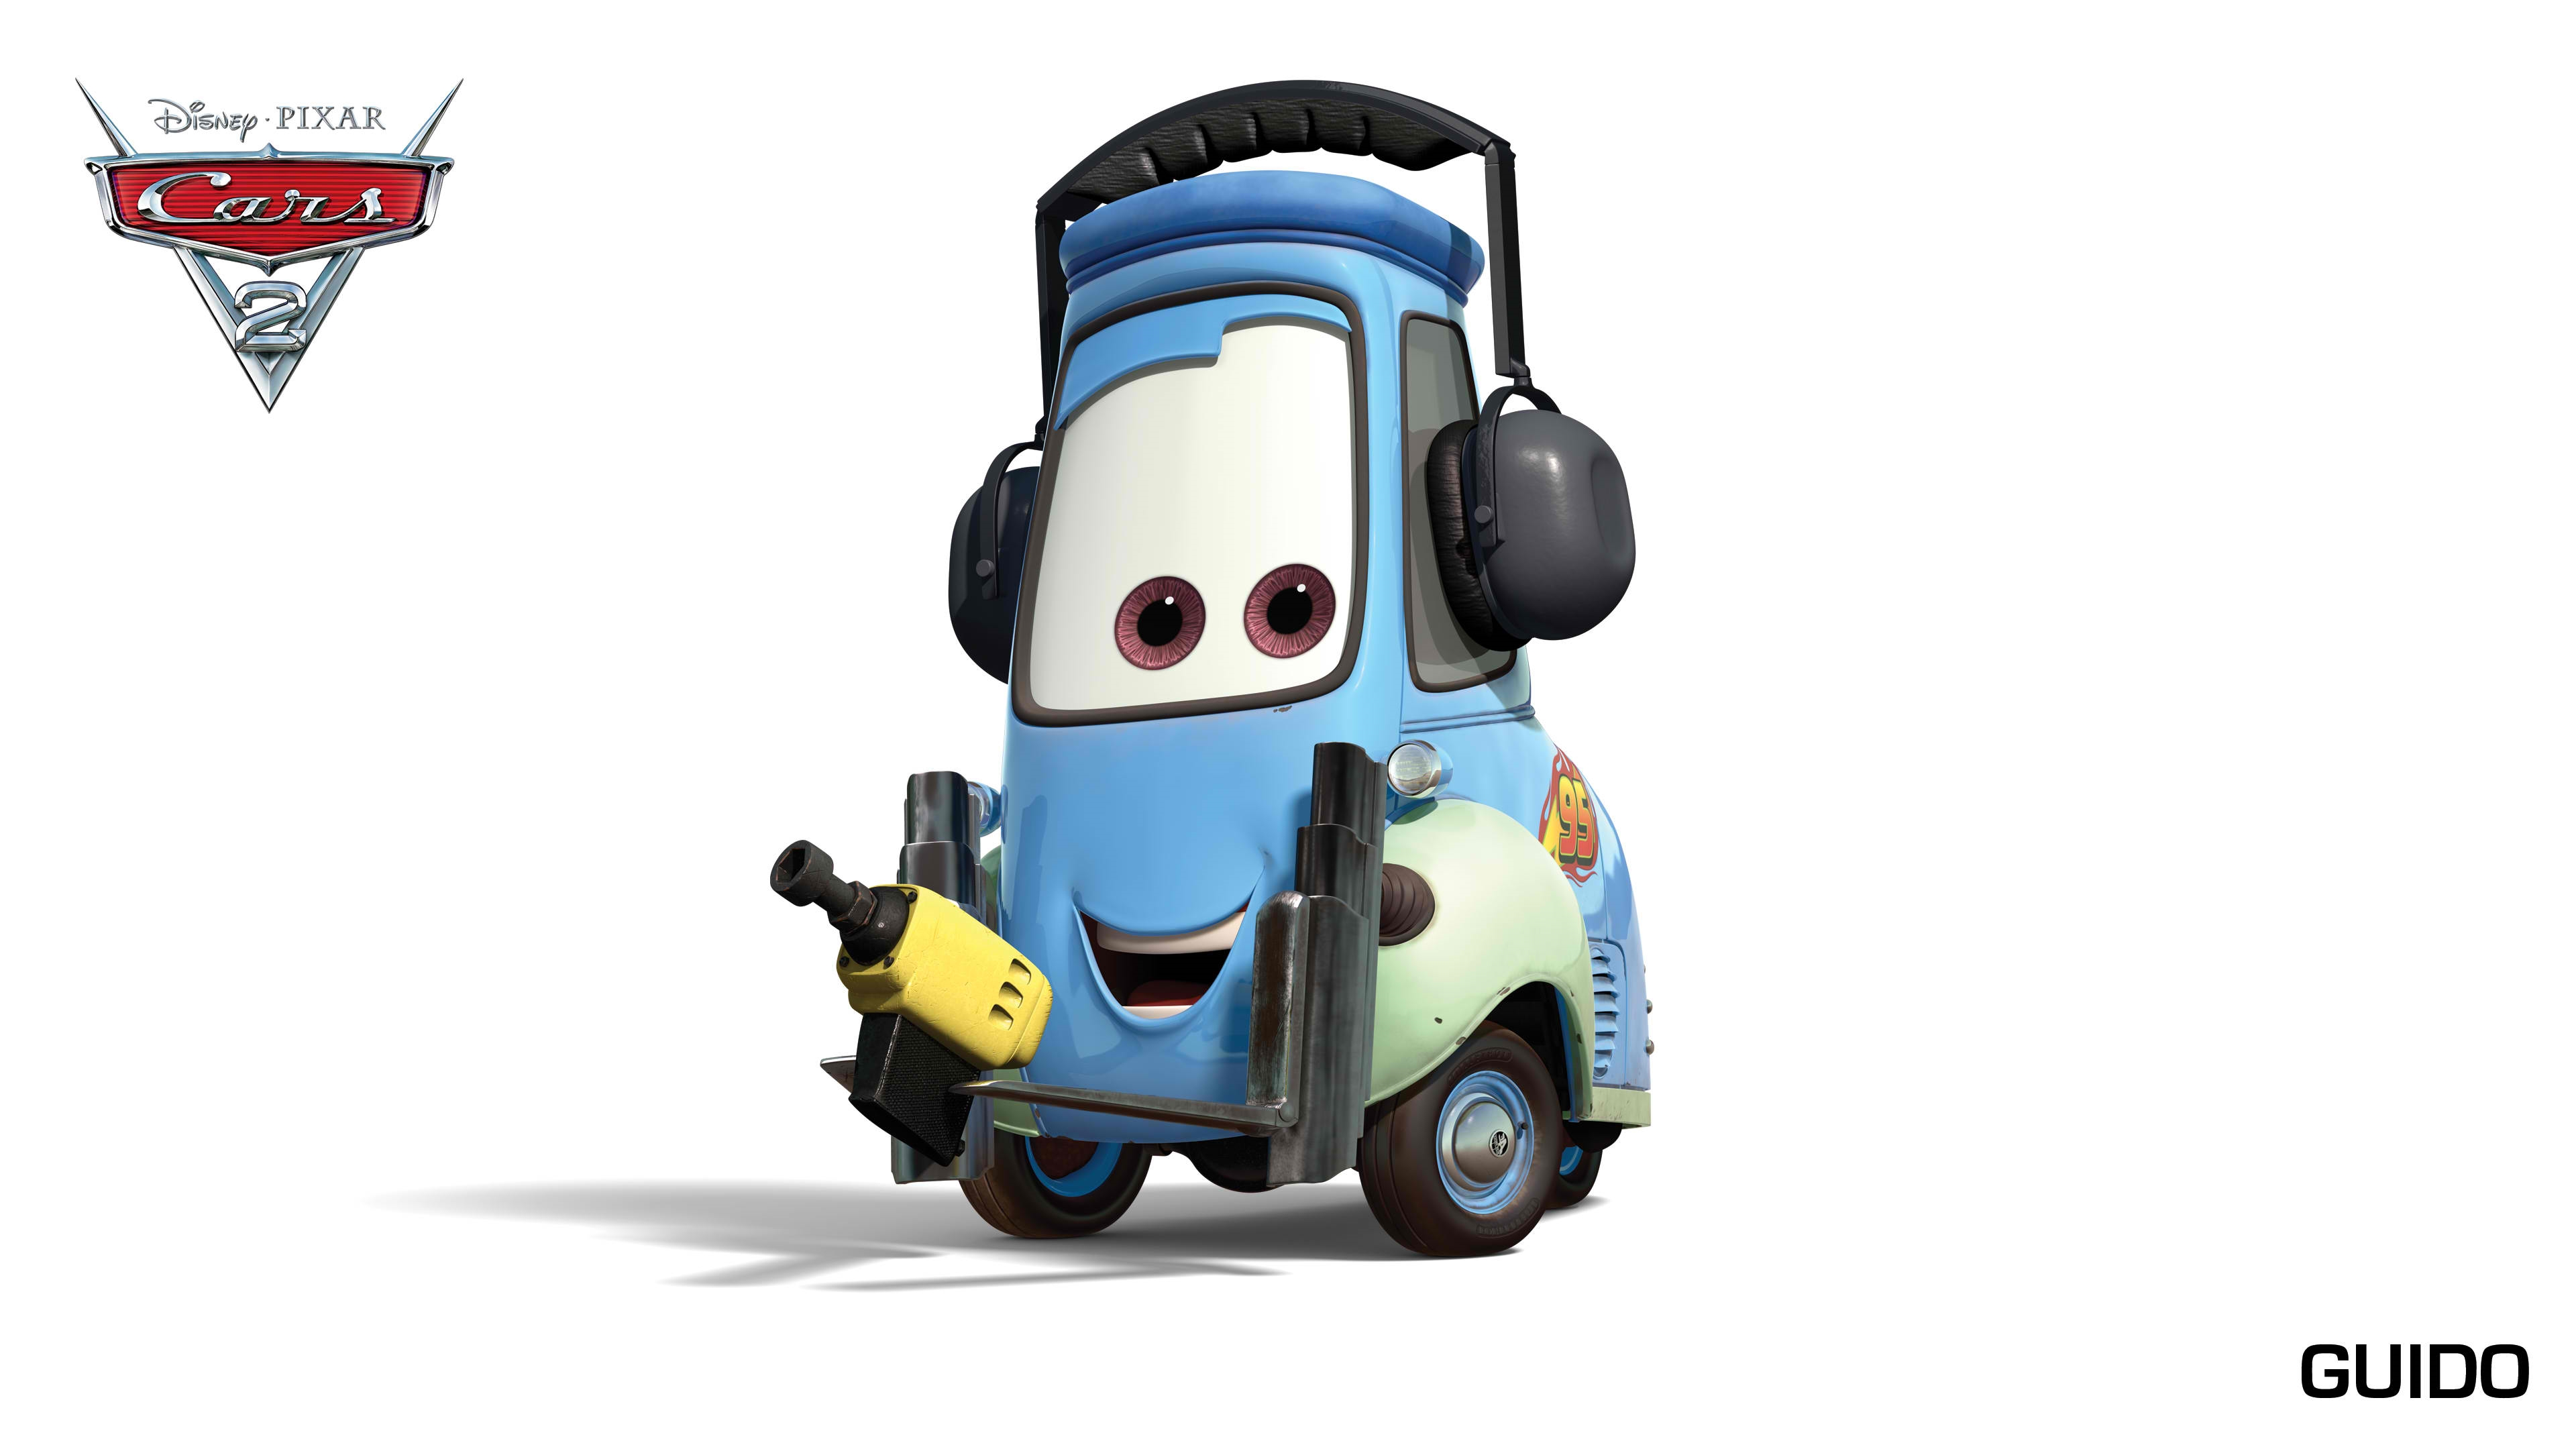 cars 2 guido free hd image